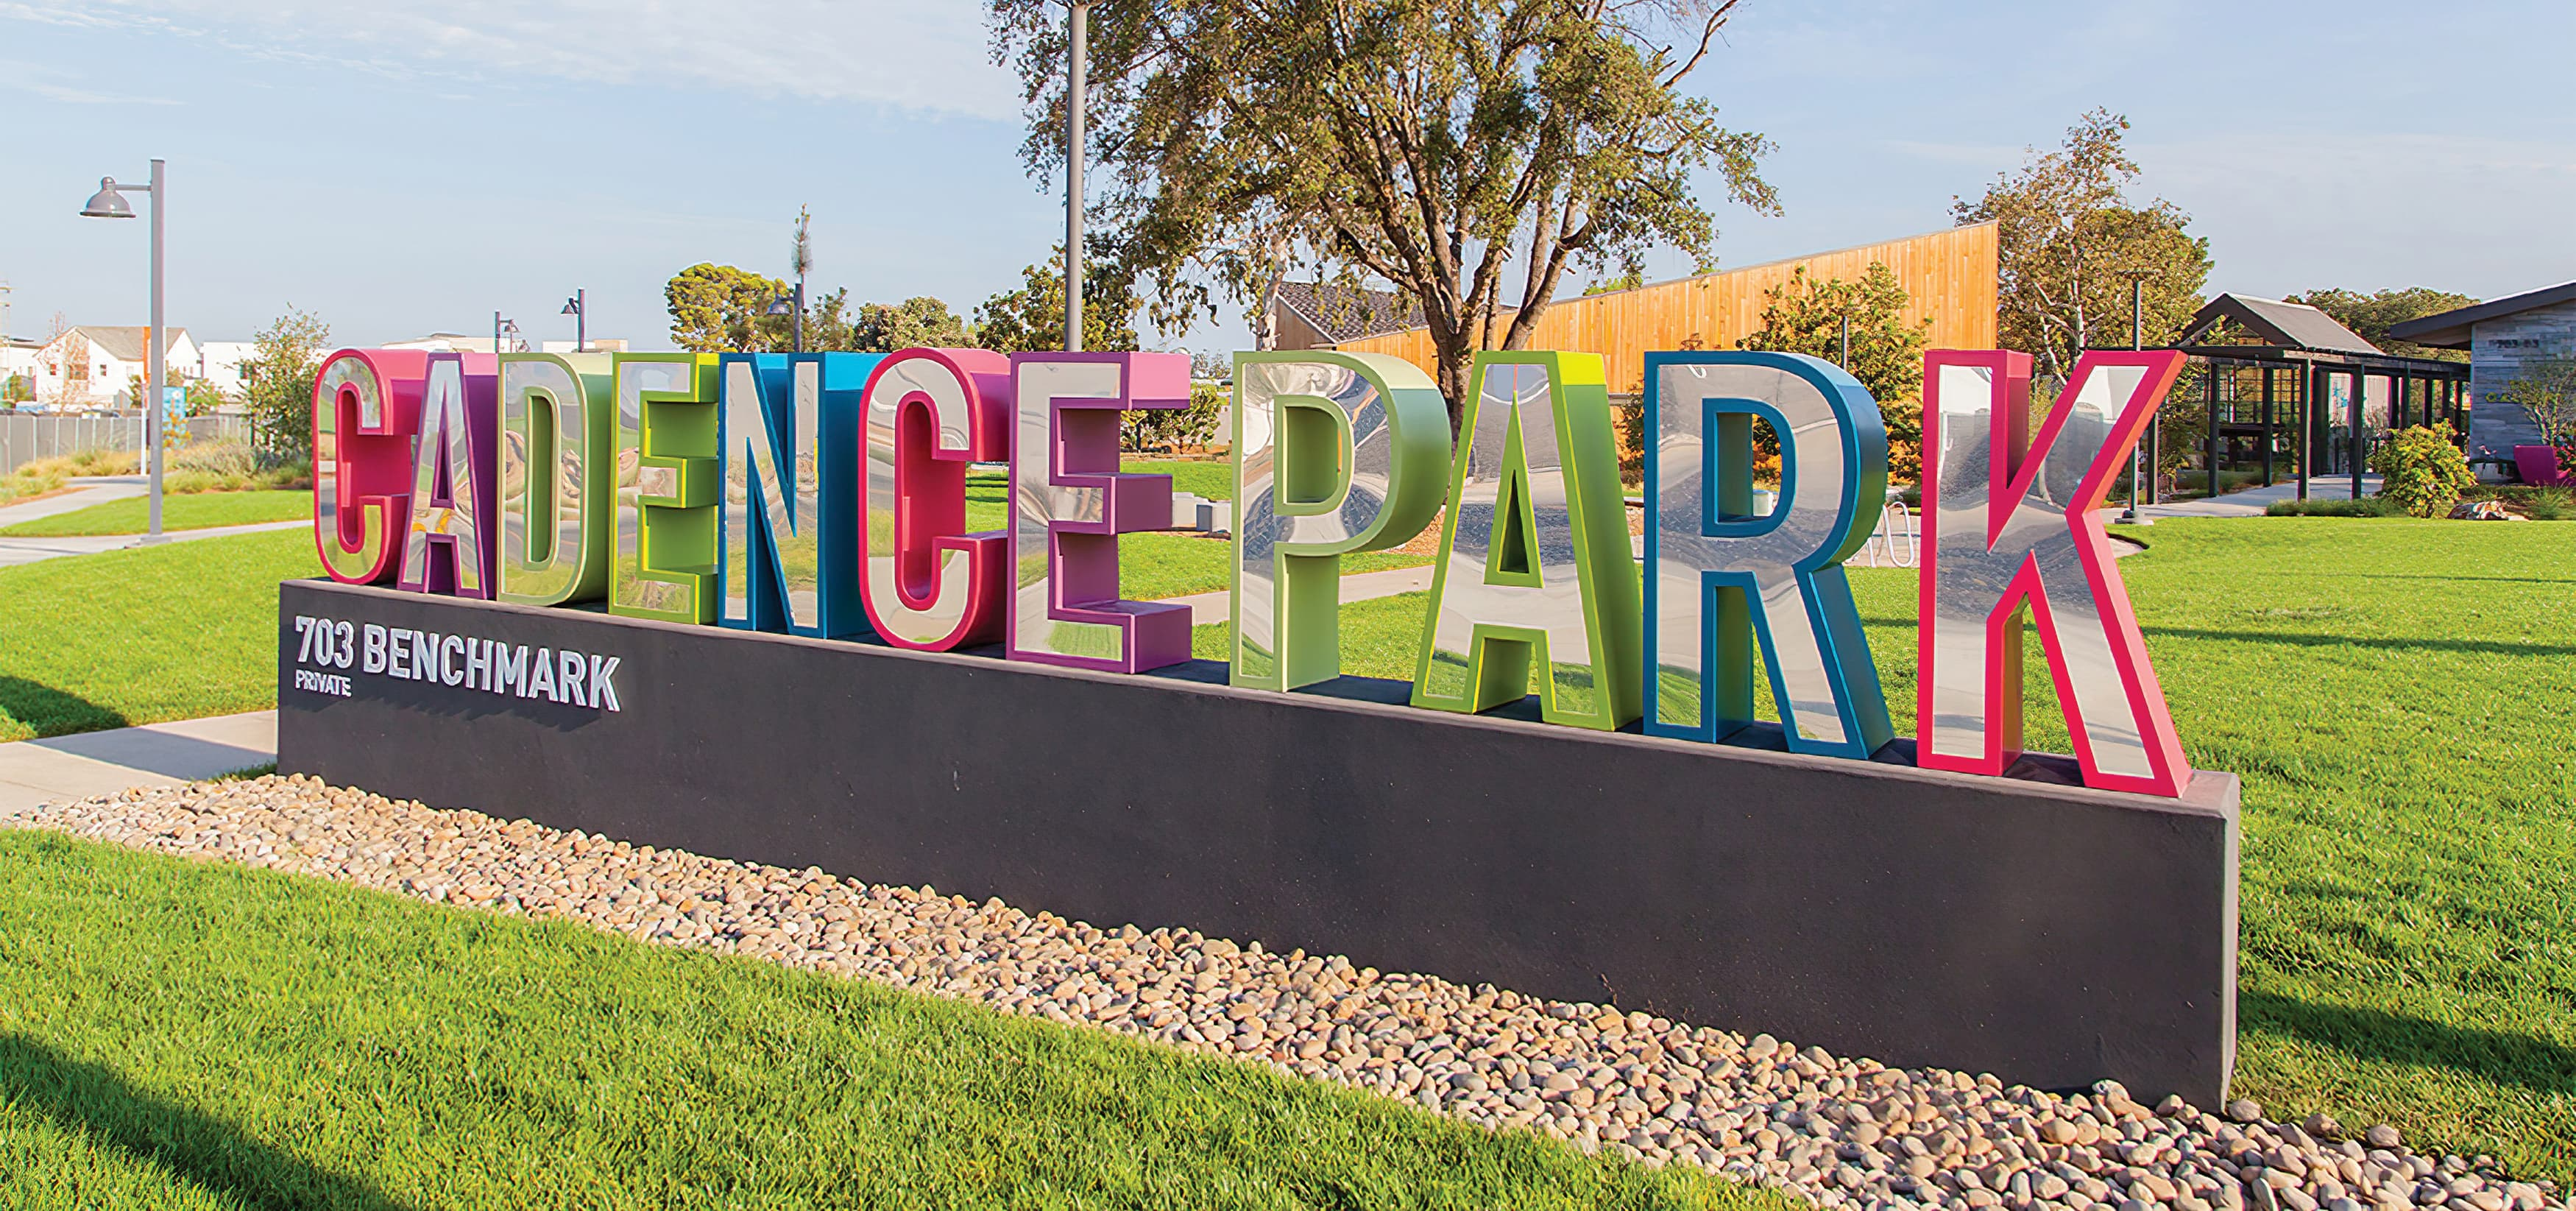 Cadence Park, a park within the Great Park Neighborhood in Irvine, California. RSM Design prepared Wayfinding Signage and Environmental Graphics. Signage Design. Monument Signage.